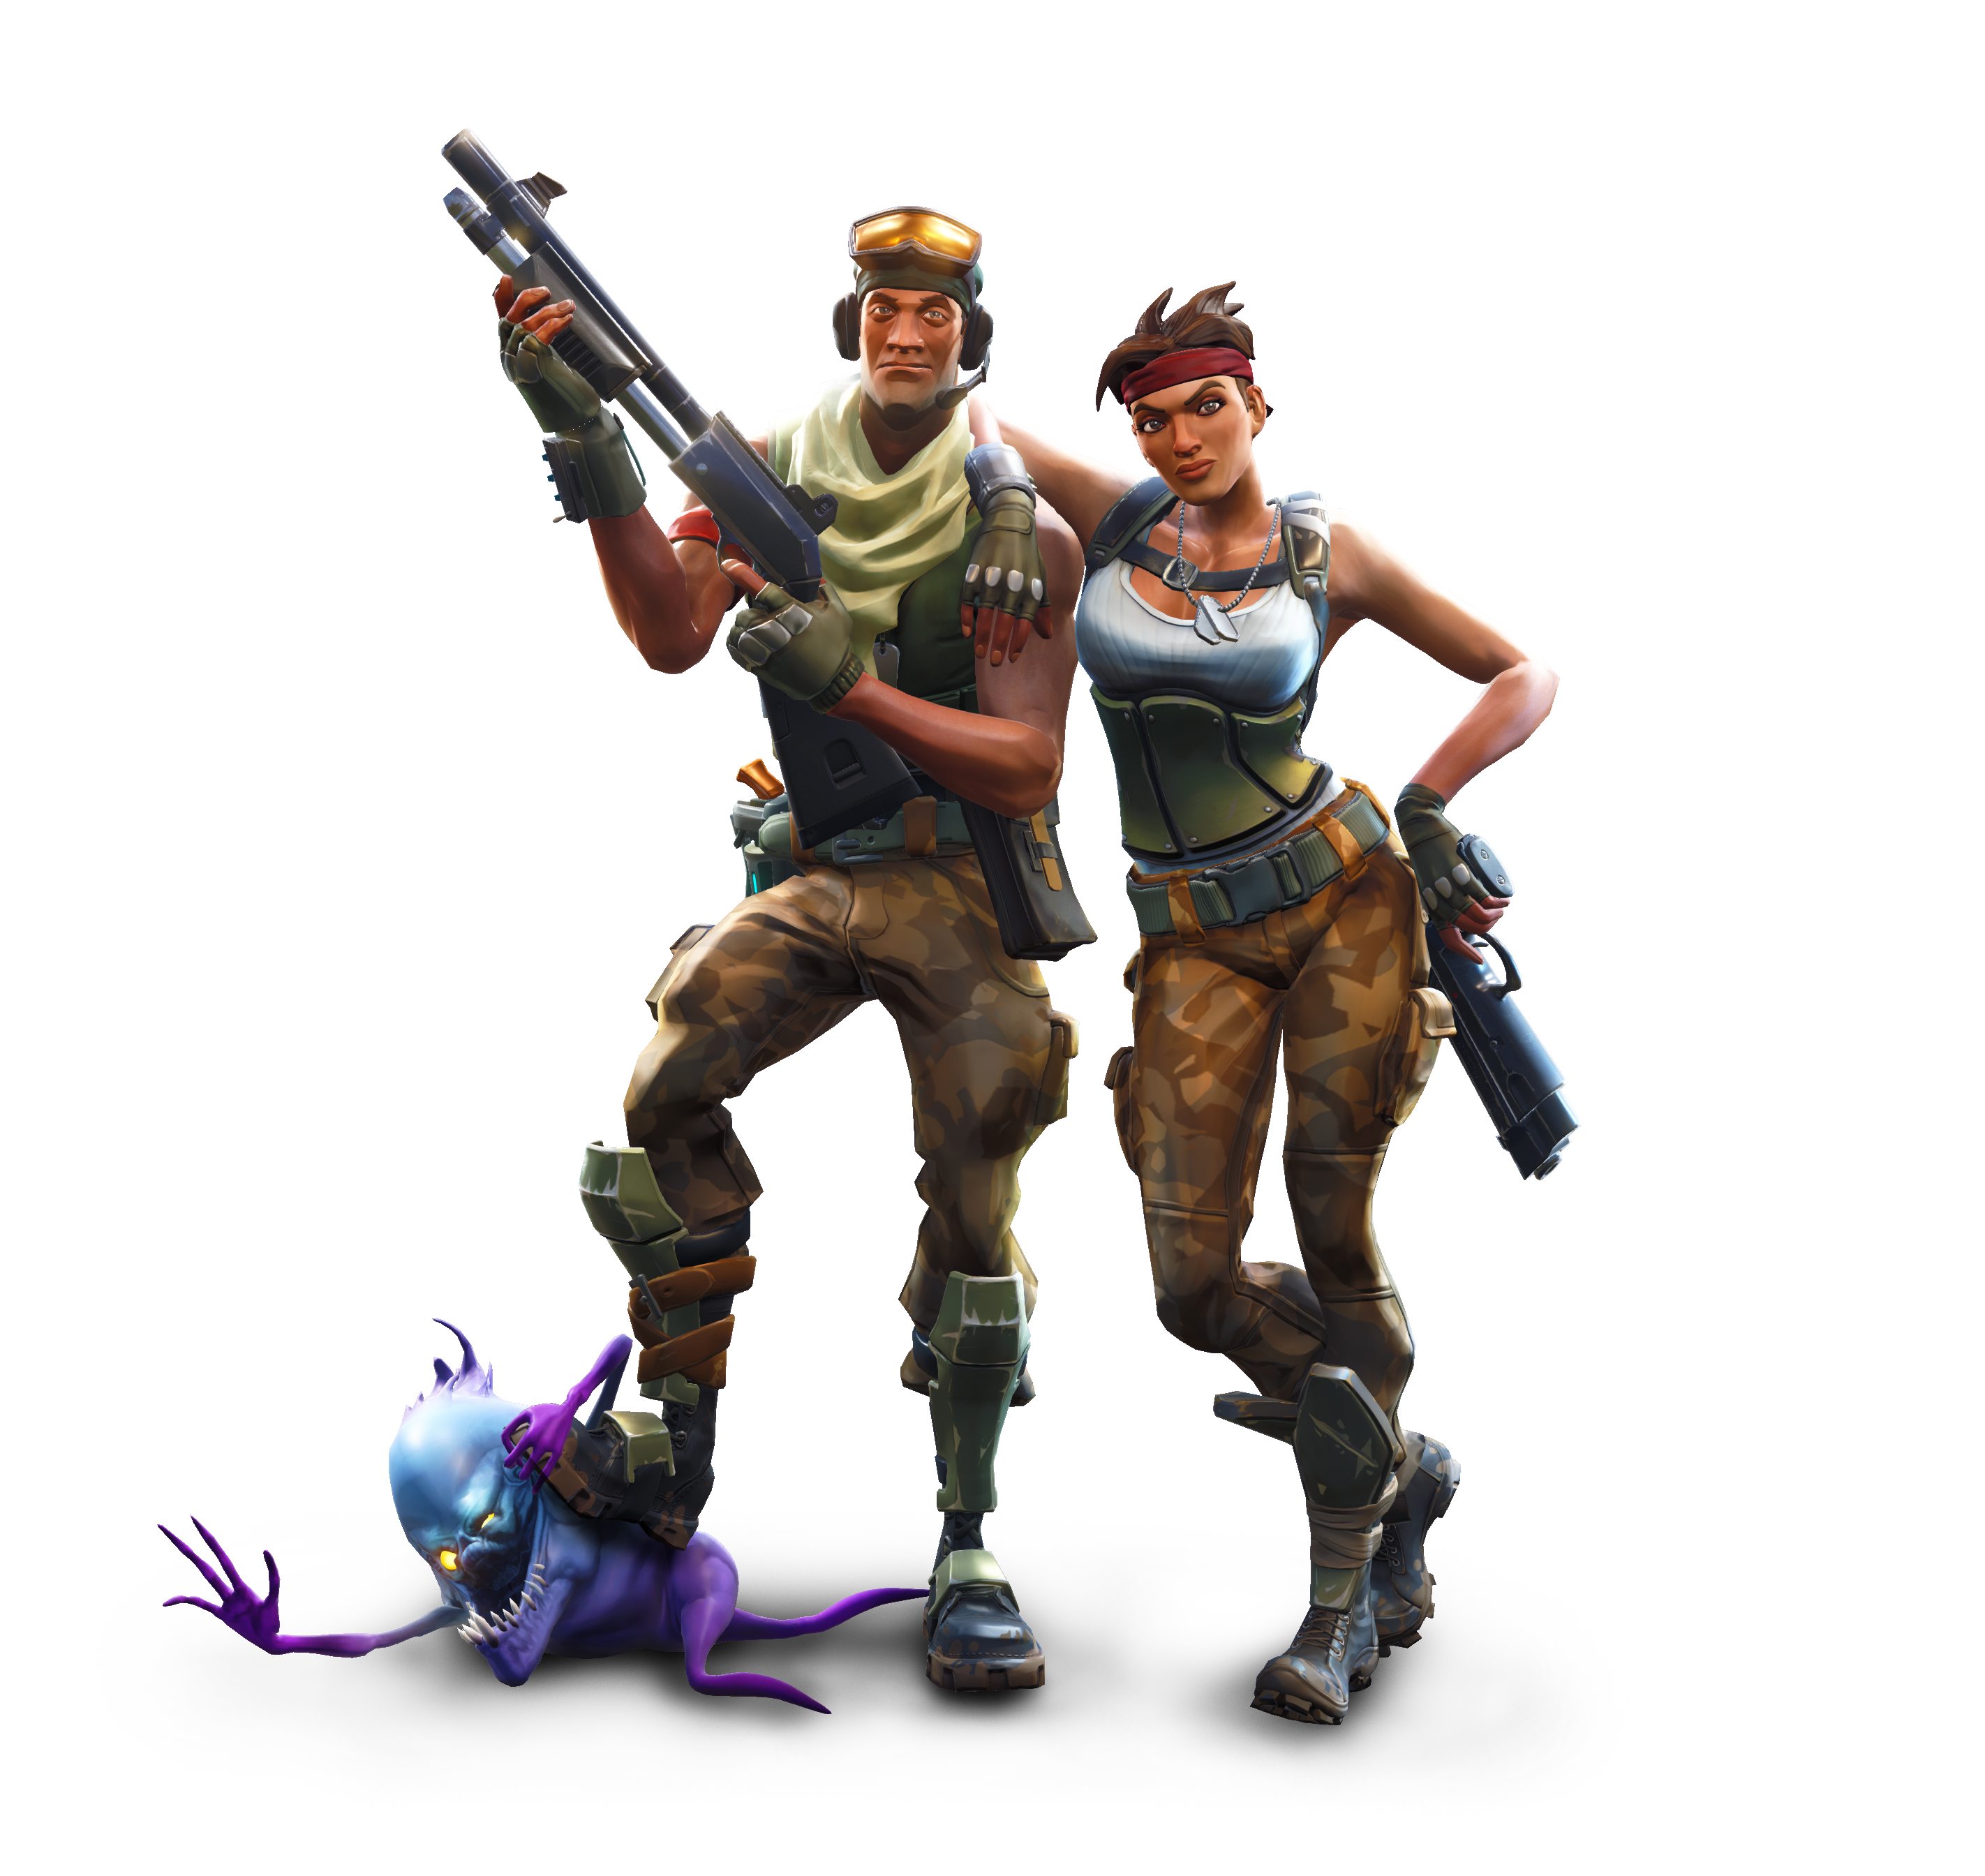 Fortnite Battle Royale Champs PNG Image